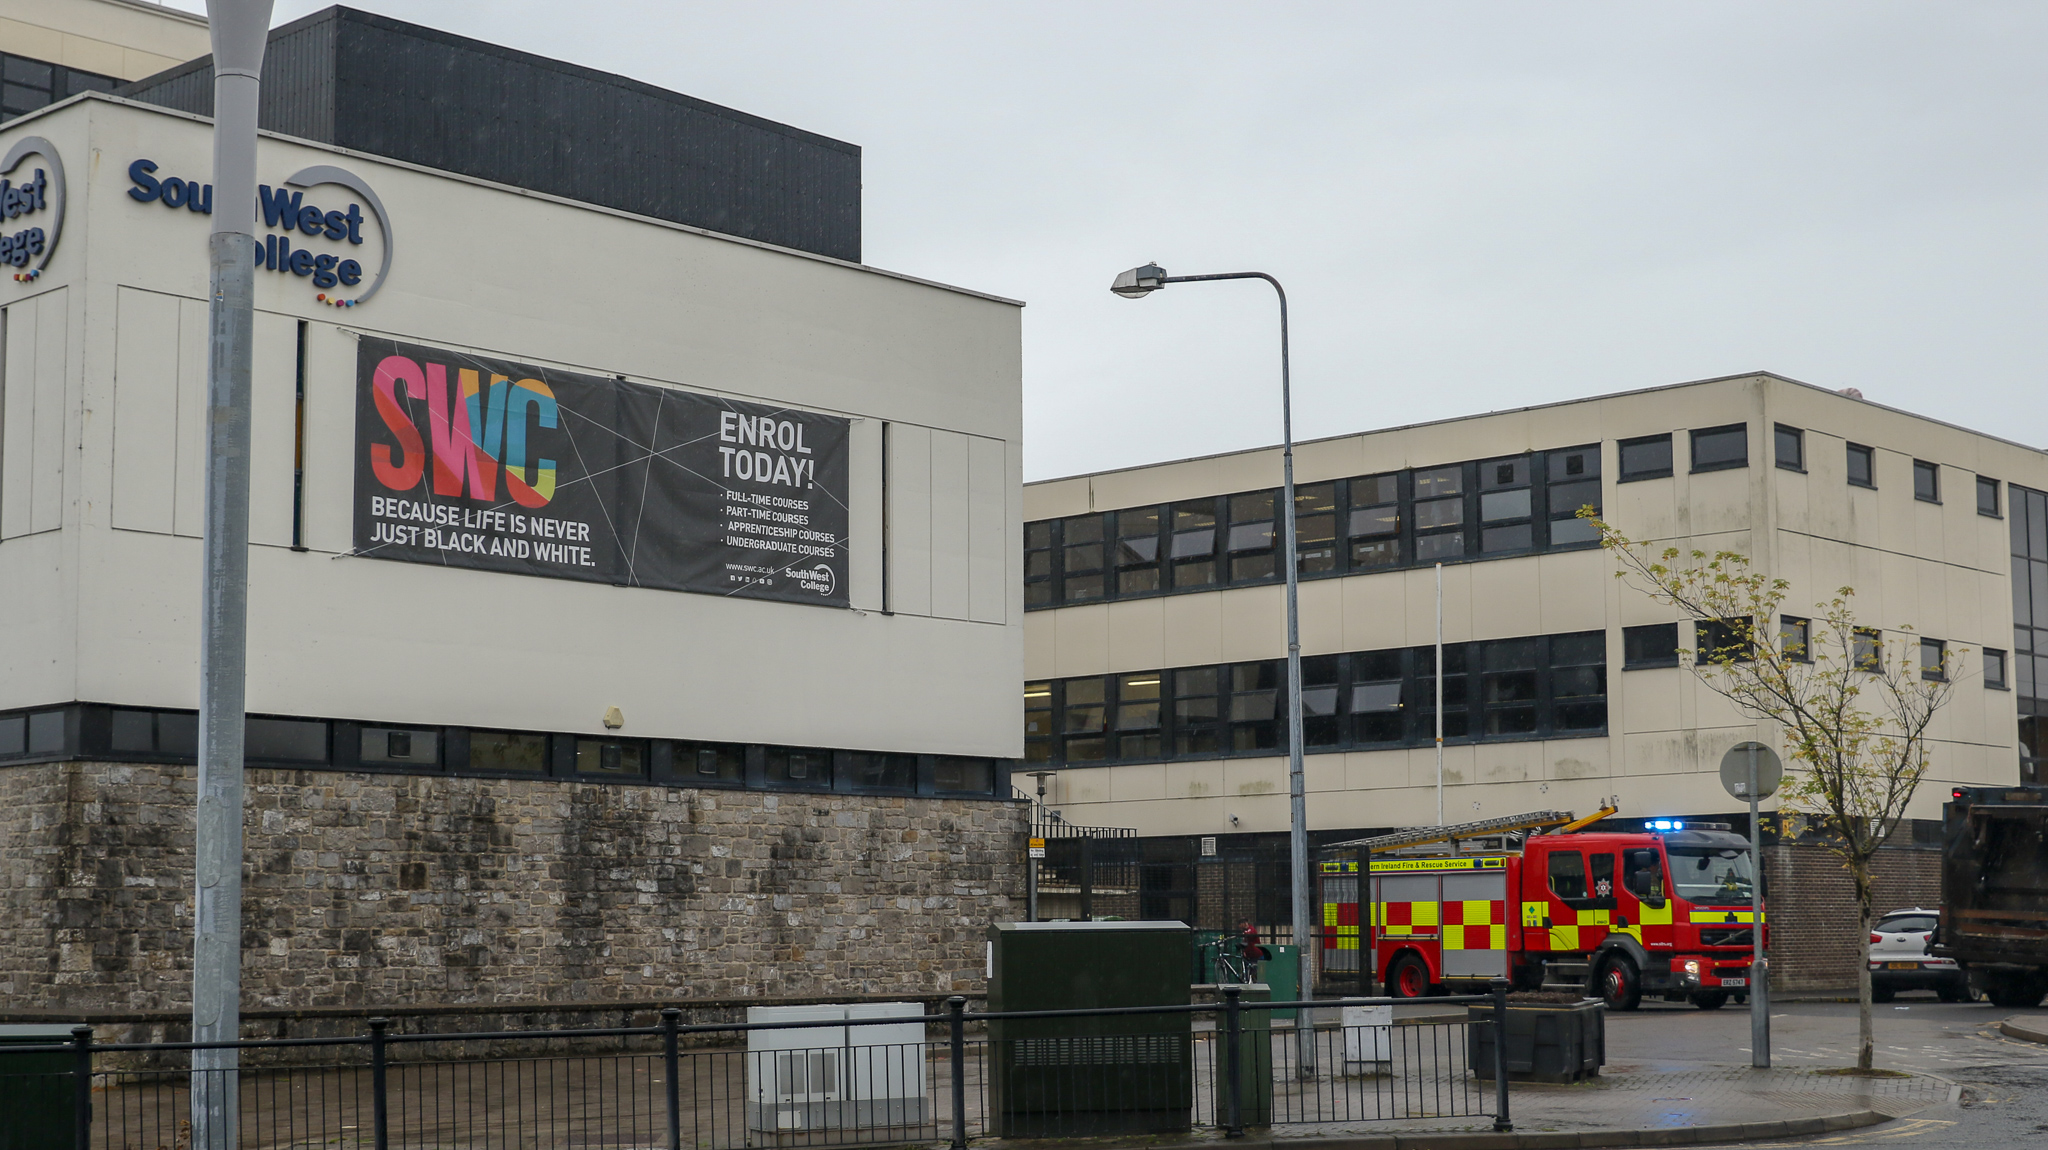 Third floor fire forces College evacuation